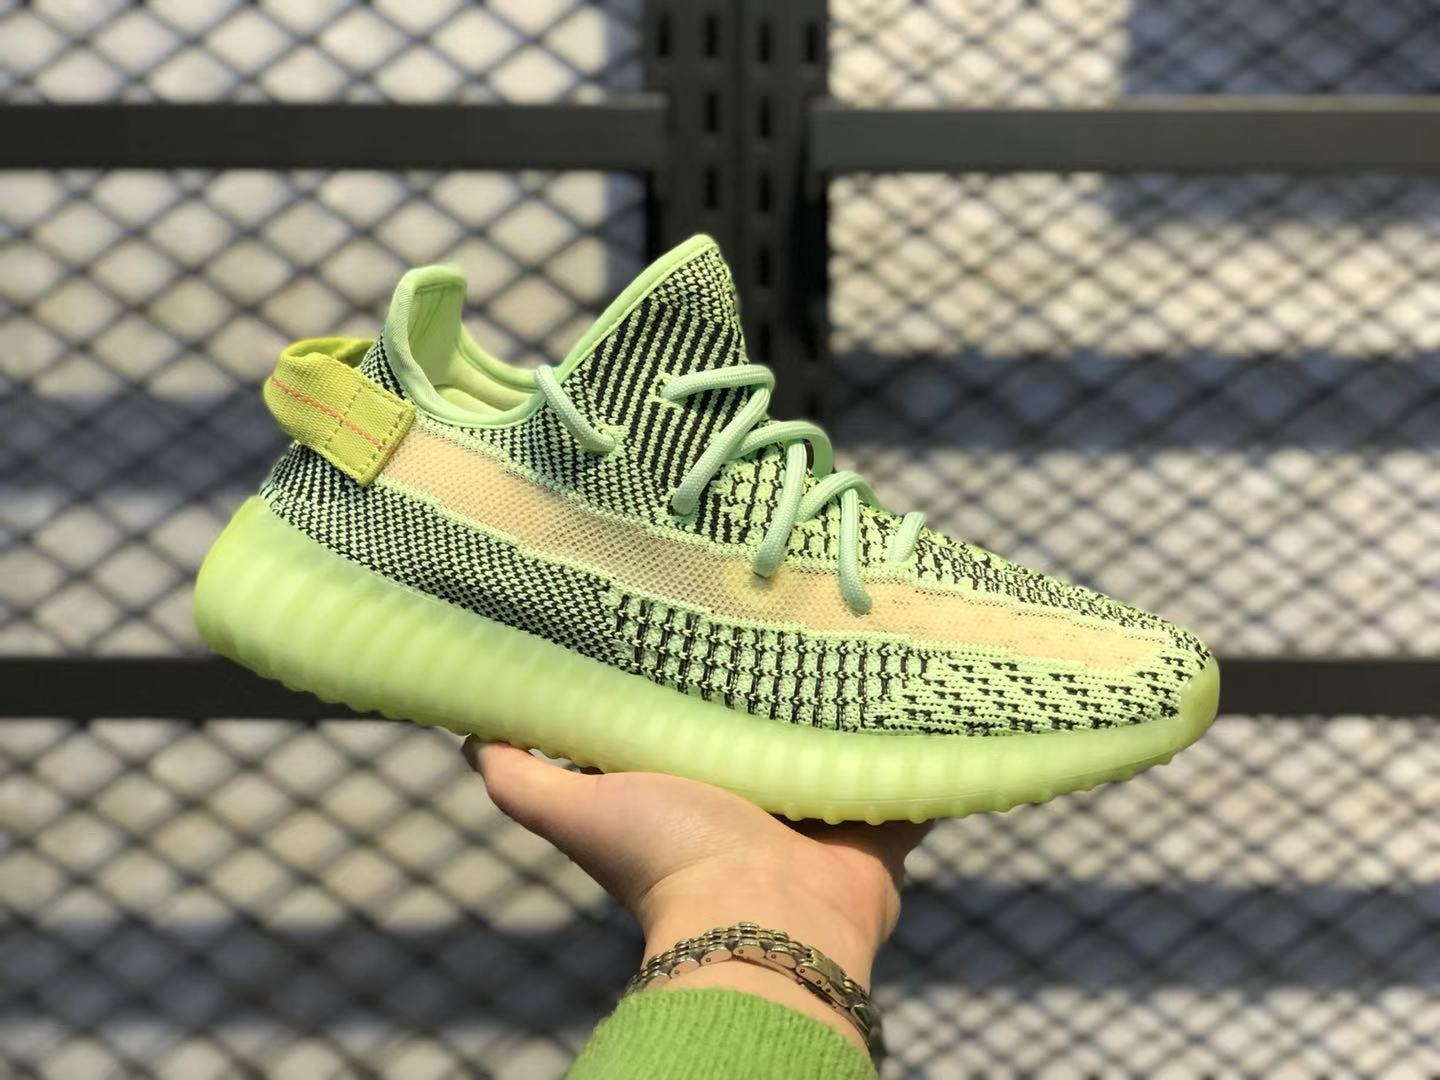 Adidas Yeezy Boost 350 V2 Yeezreel Athletic Sneakers For Online Sale FW5191